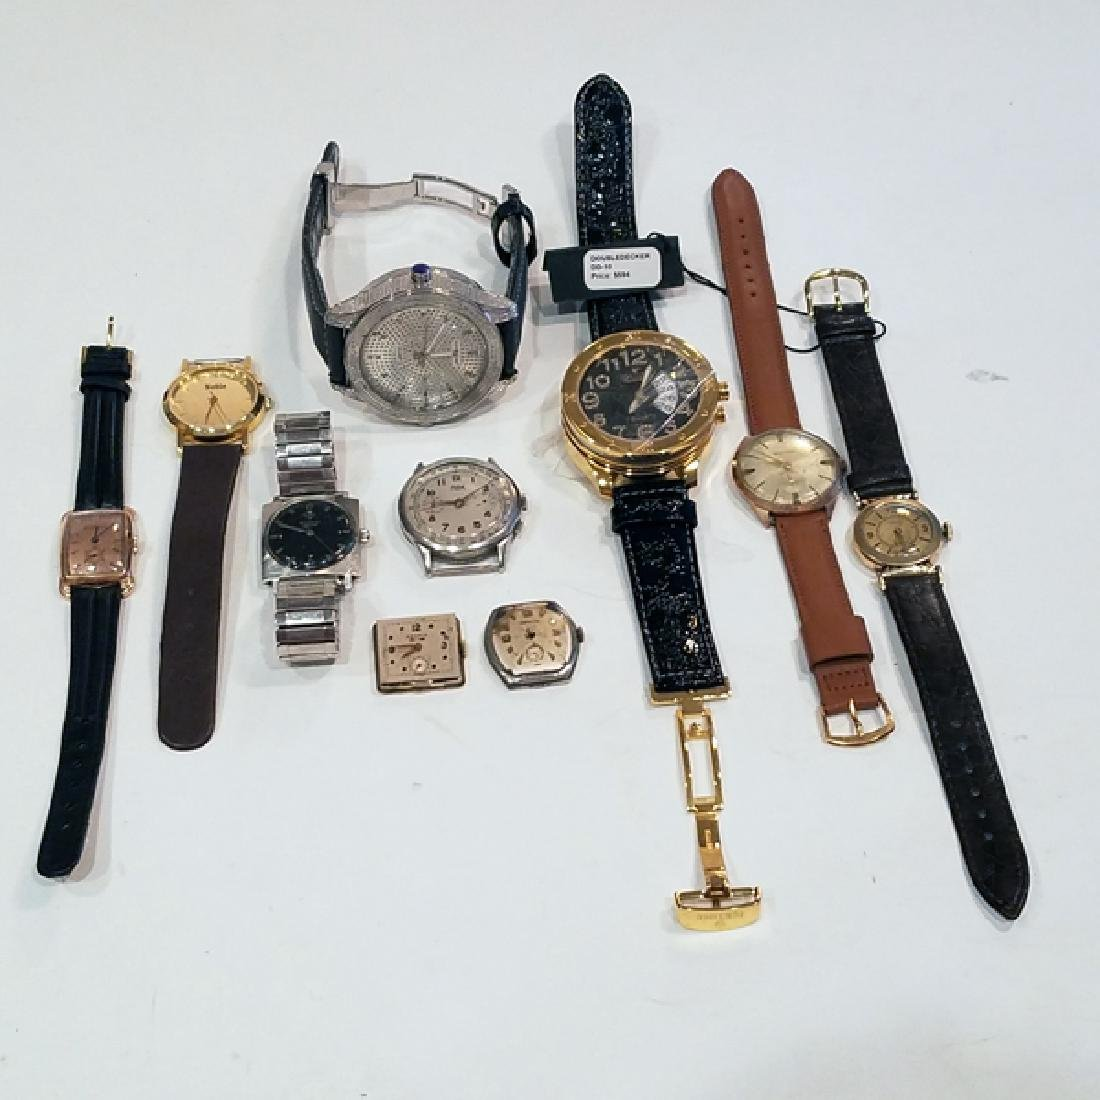 10 Men's Working Watches Some in Need of Repair